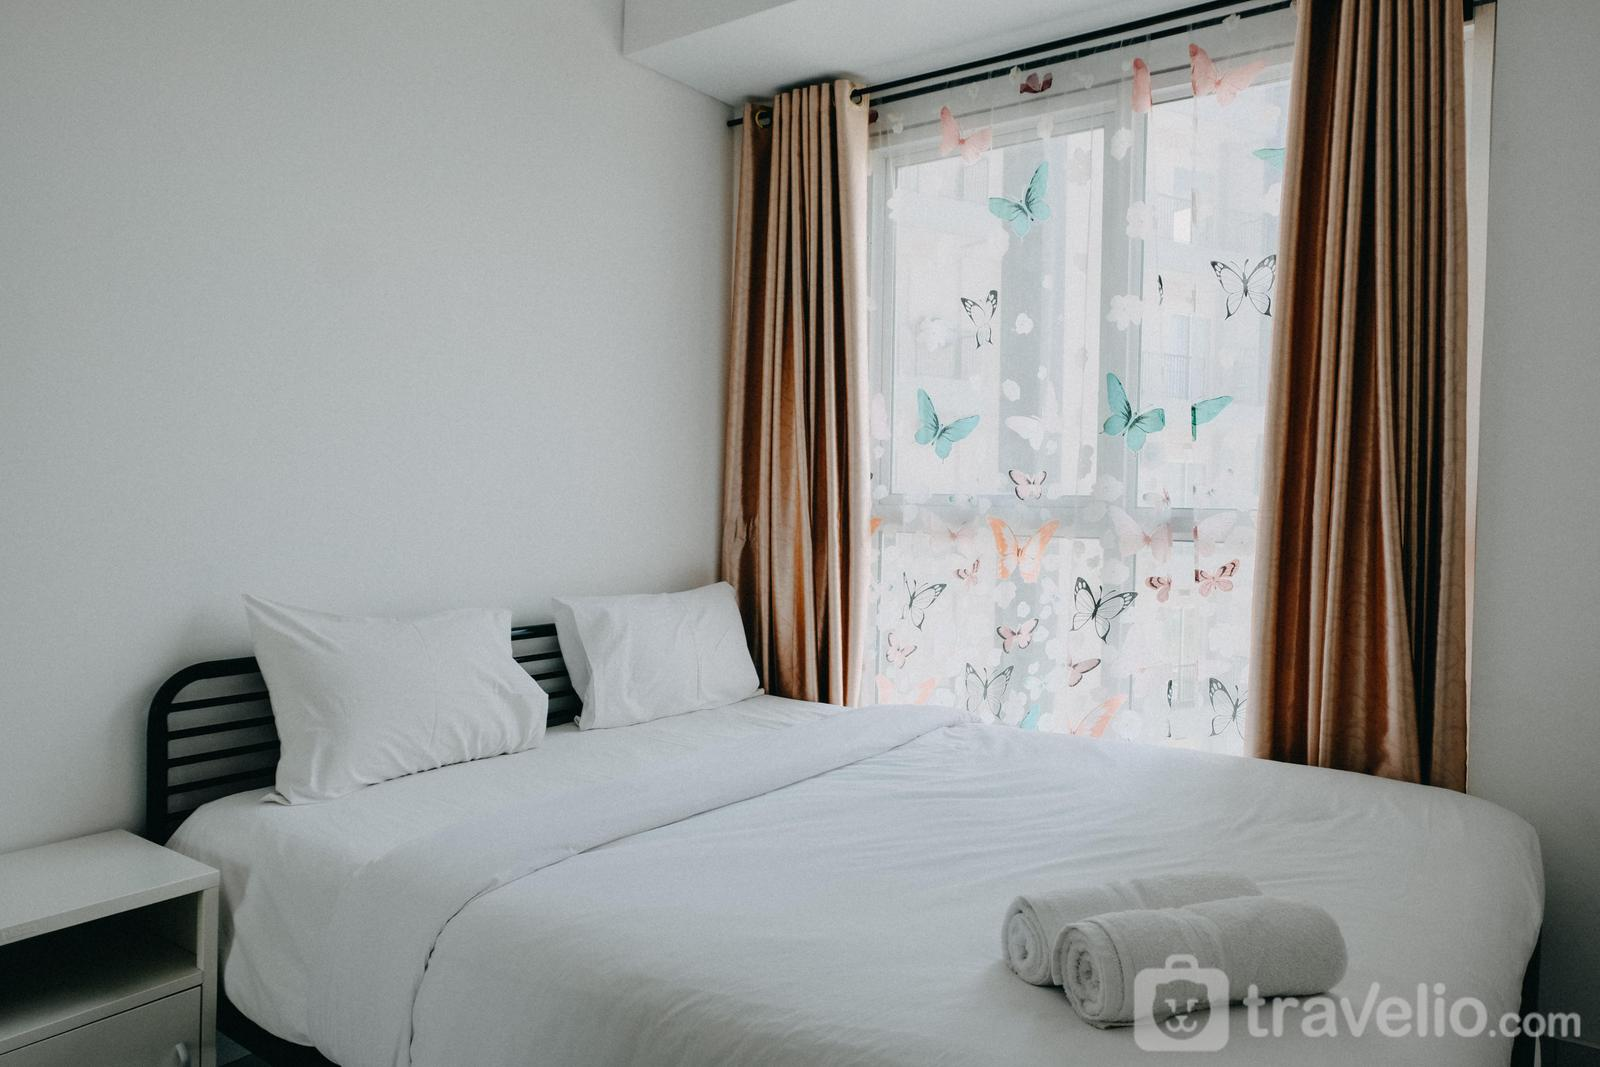 Casa de Parco Apartment - Simply Furnished 1BR With City View at Casa de Parco Apartment By Travelio